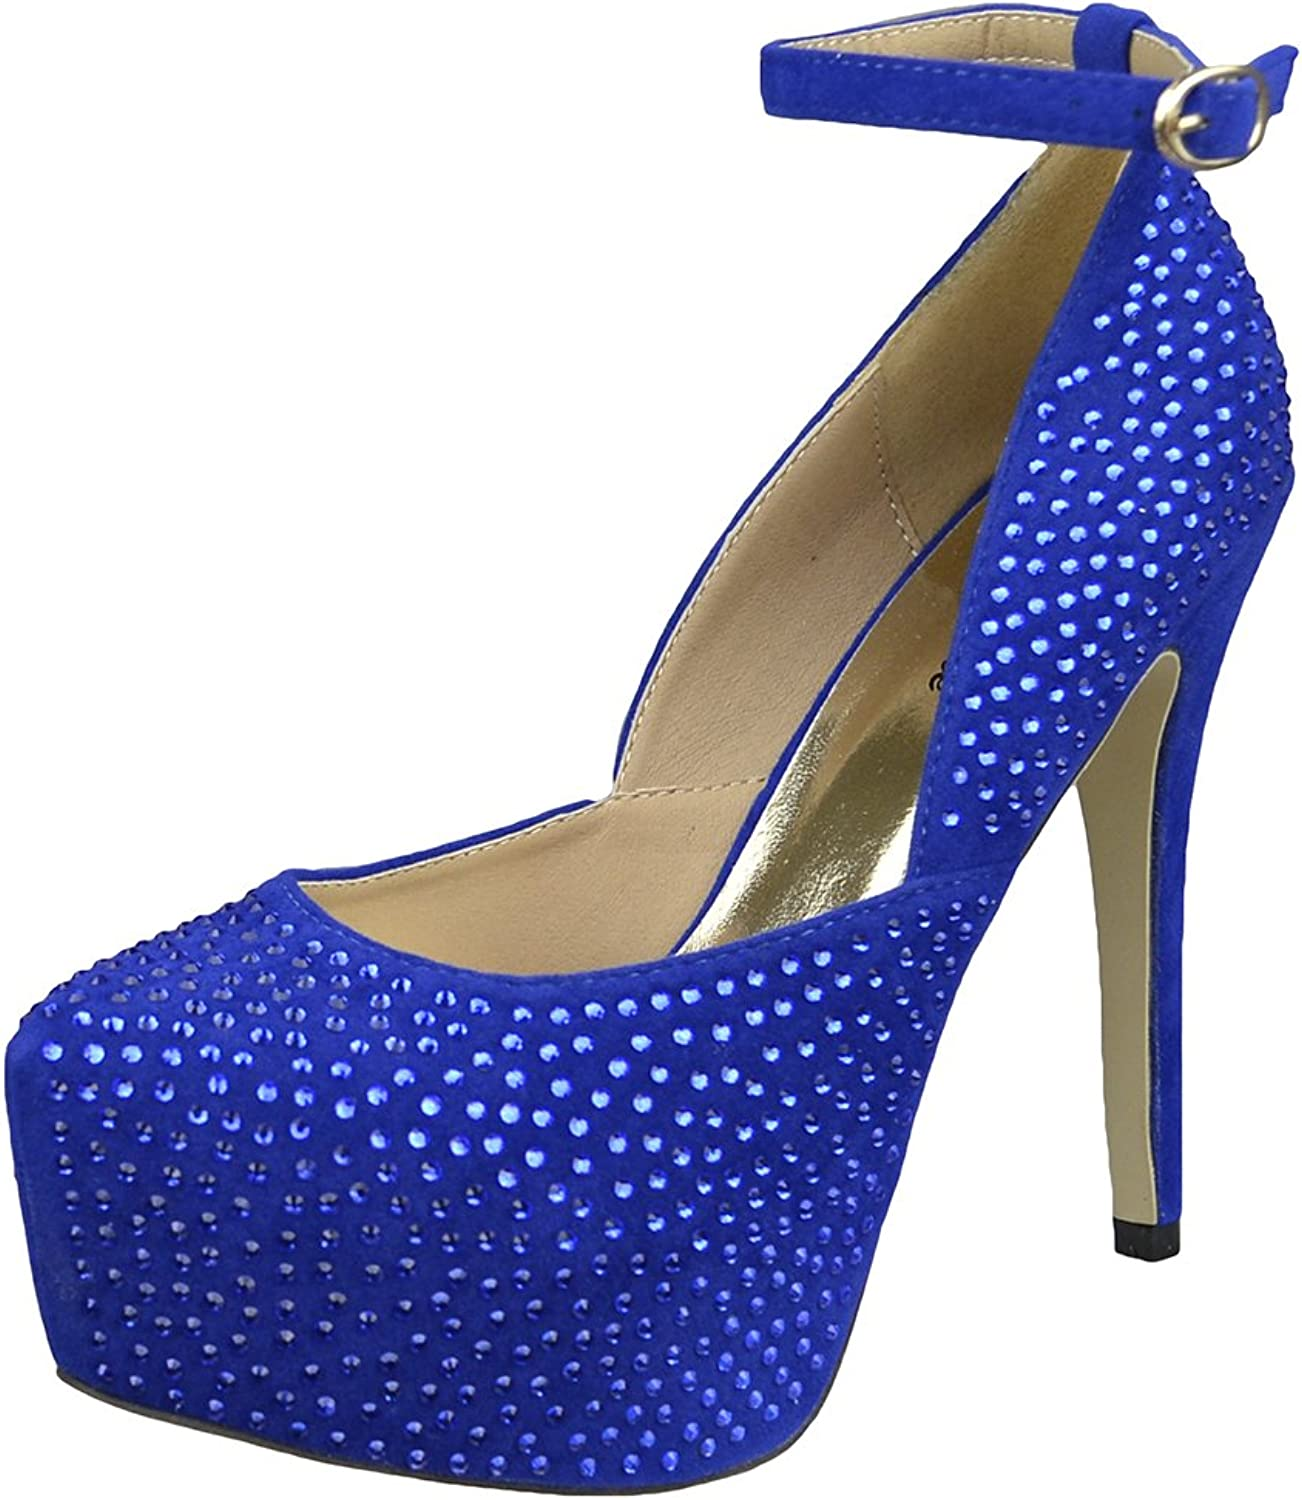 DS By KSC Womens Platform shoes Sexy Glitter Scoop Vamp High Heel Dress shoes bluee